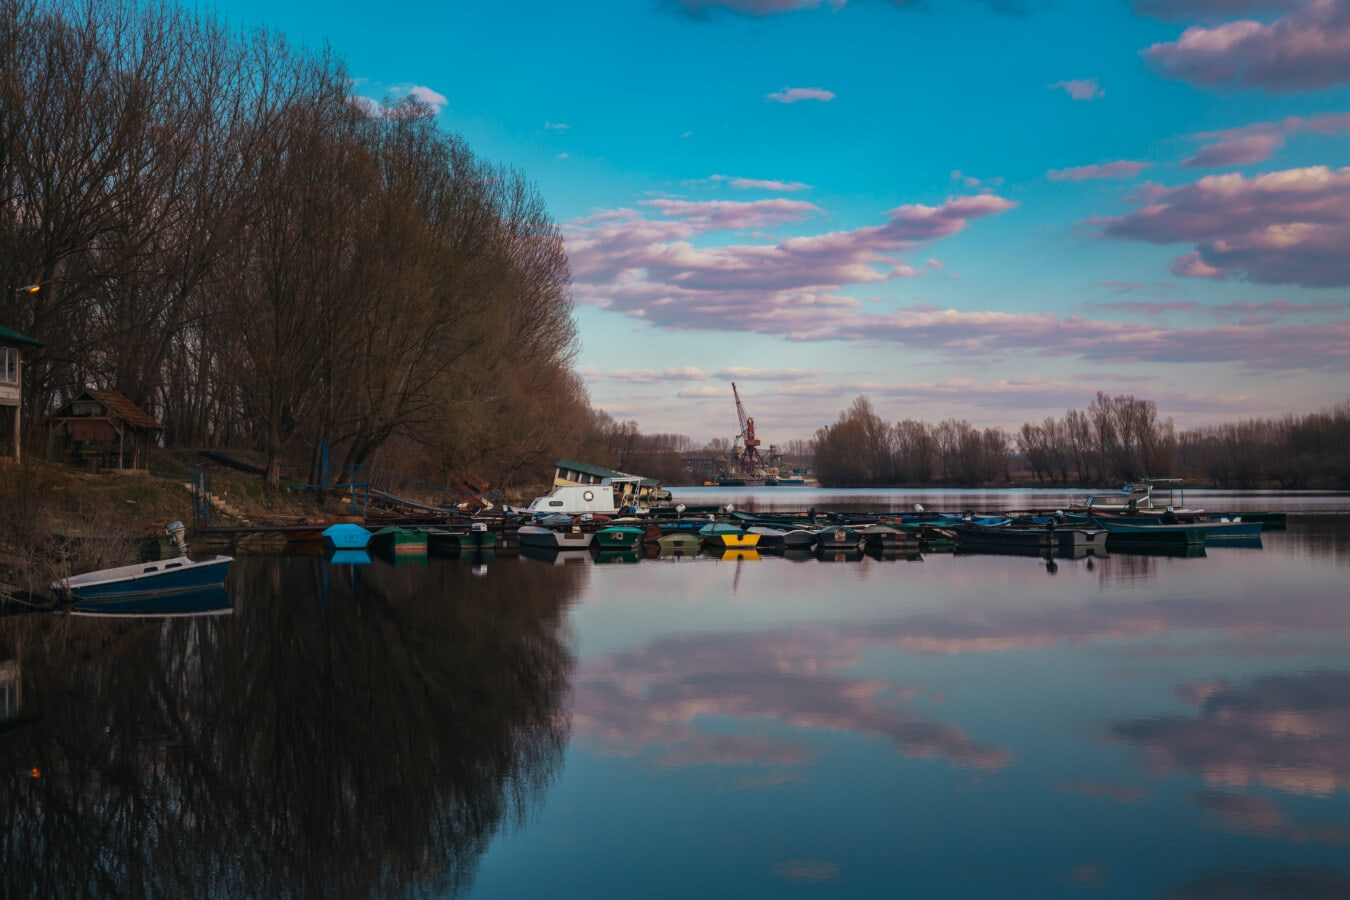 harbour, motorboat, lakeside, boats, water, lake, river, reflection, sunset, dawn